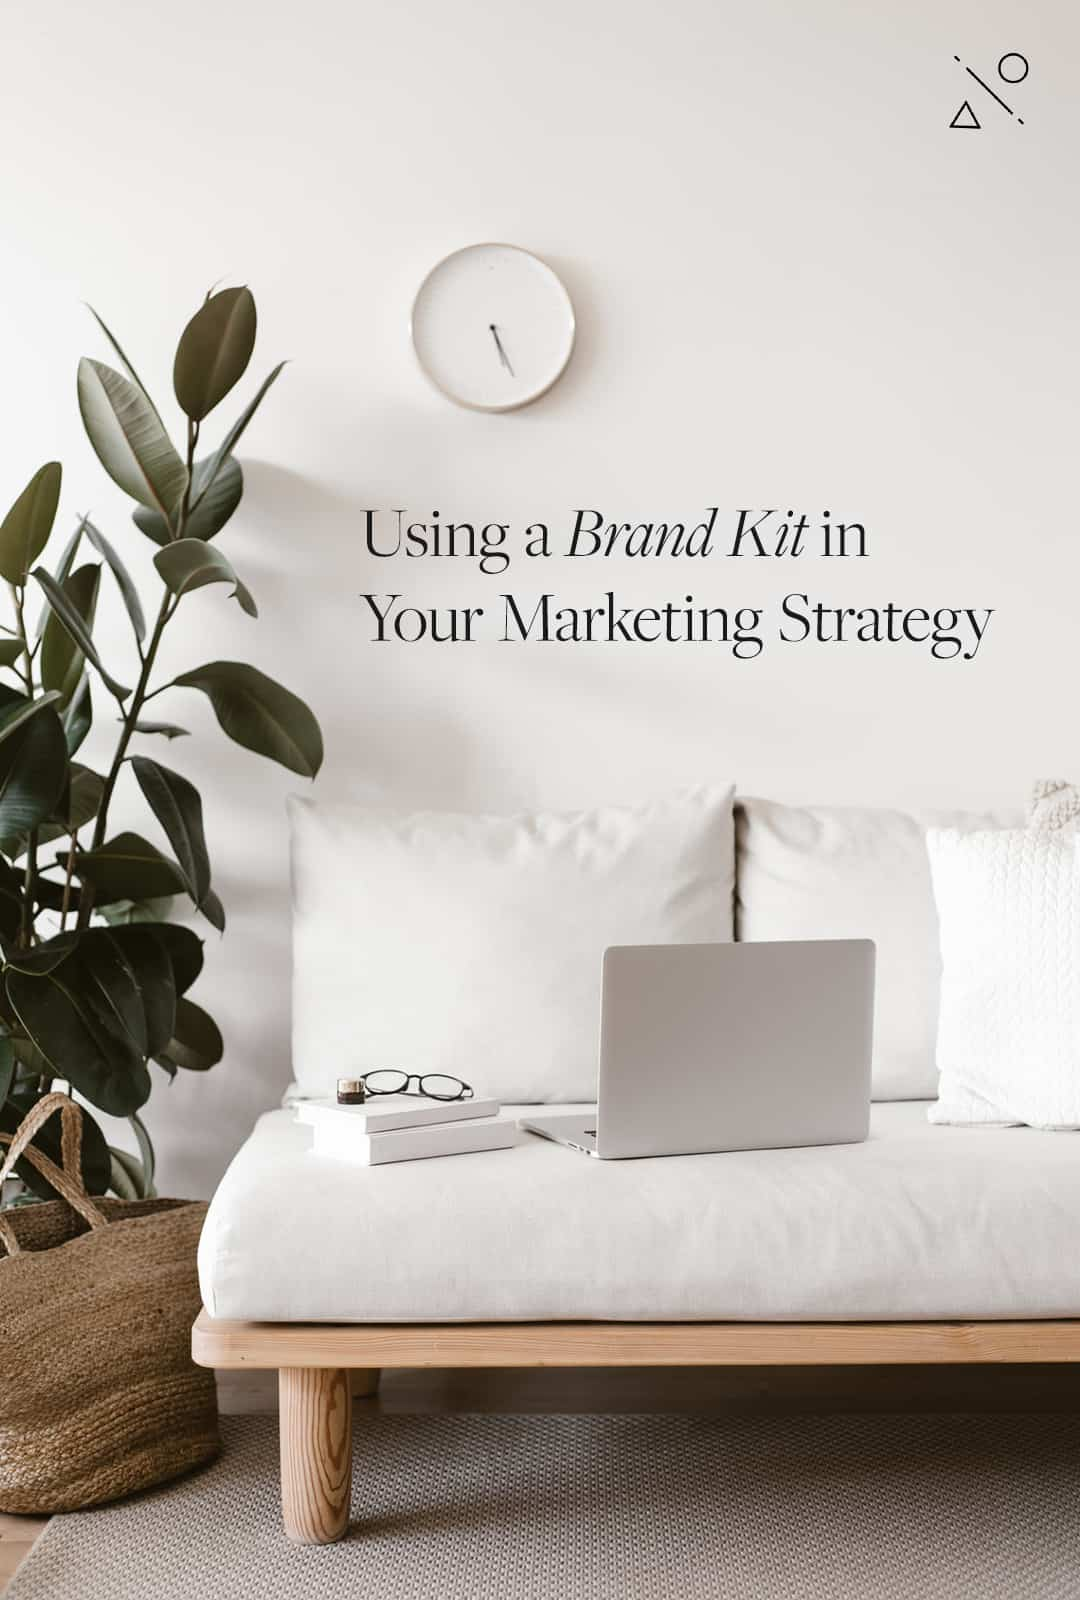 Using a Brand Kit in Your Marketing Strategy